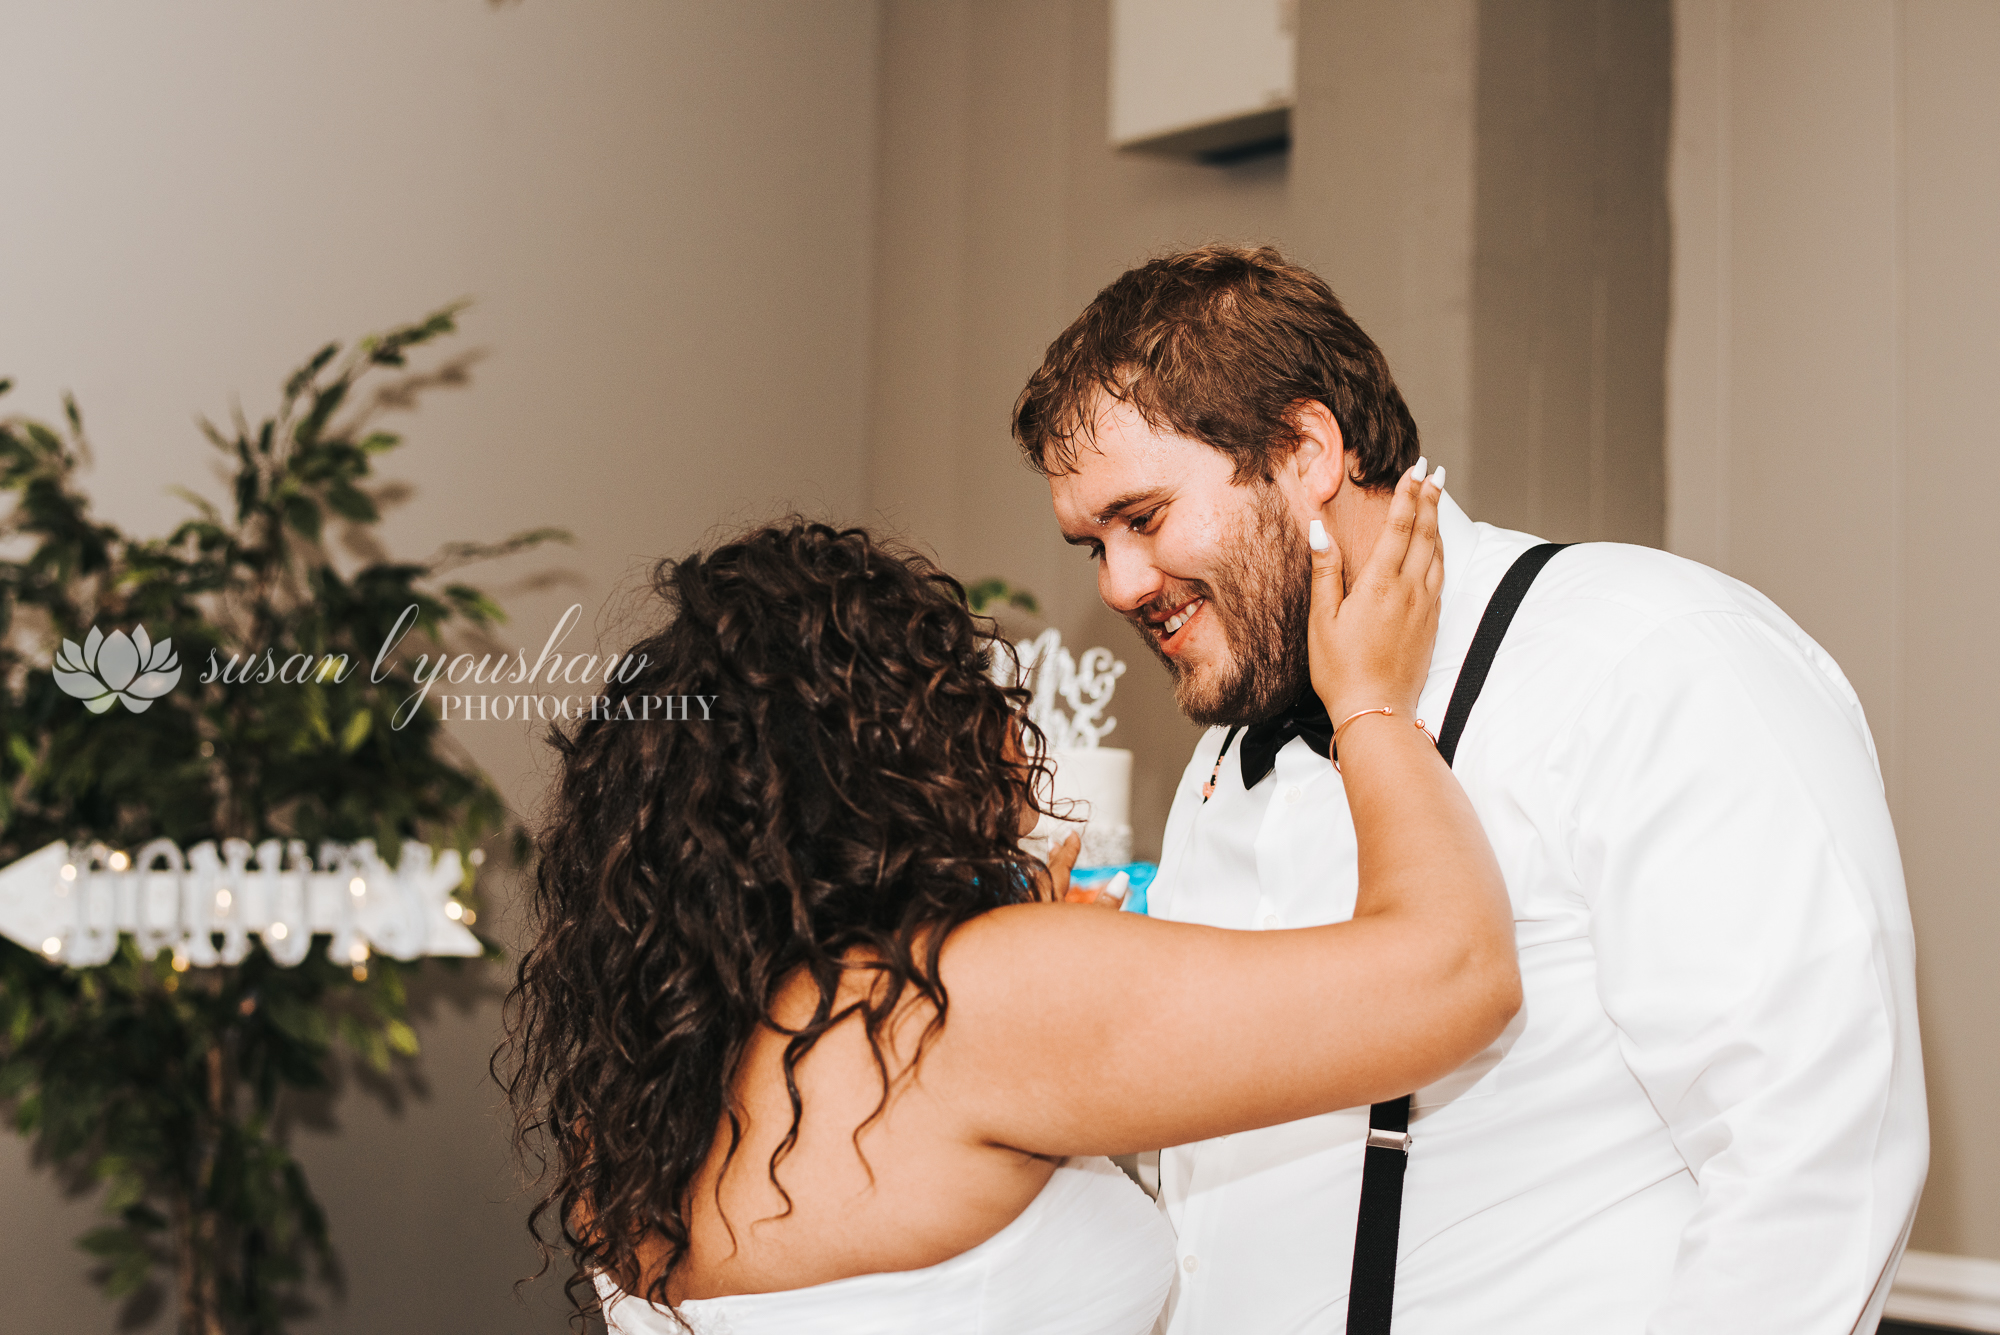 Katelyn and Wes Wedding Photos 07-13-2019 SLY Photography-110.jpg